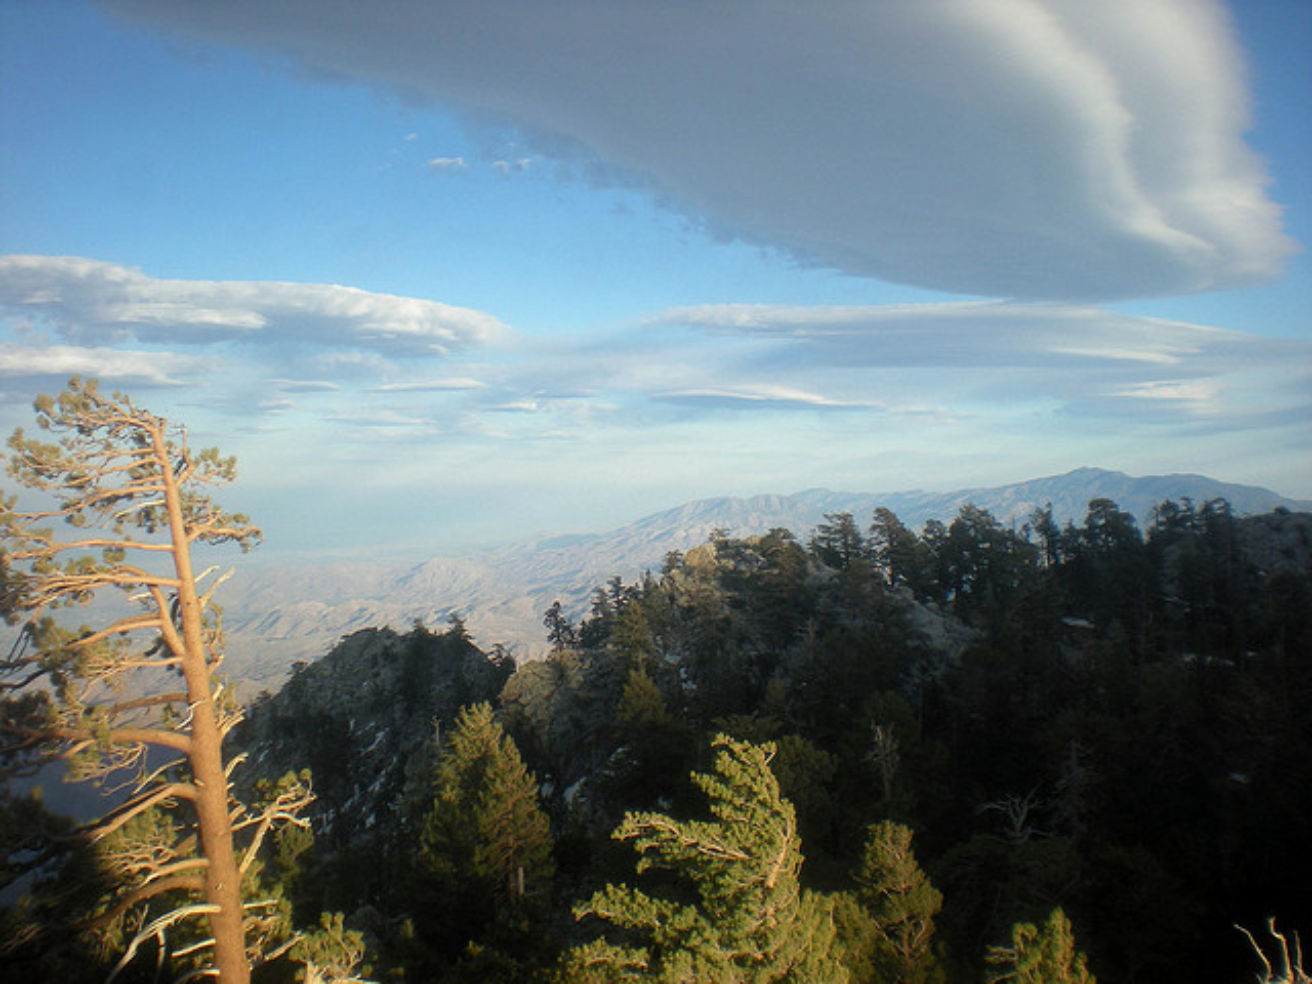 Clouds from the Palm Springs Aerial Tram